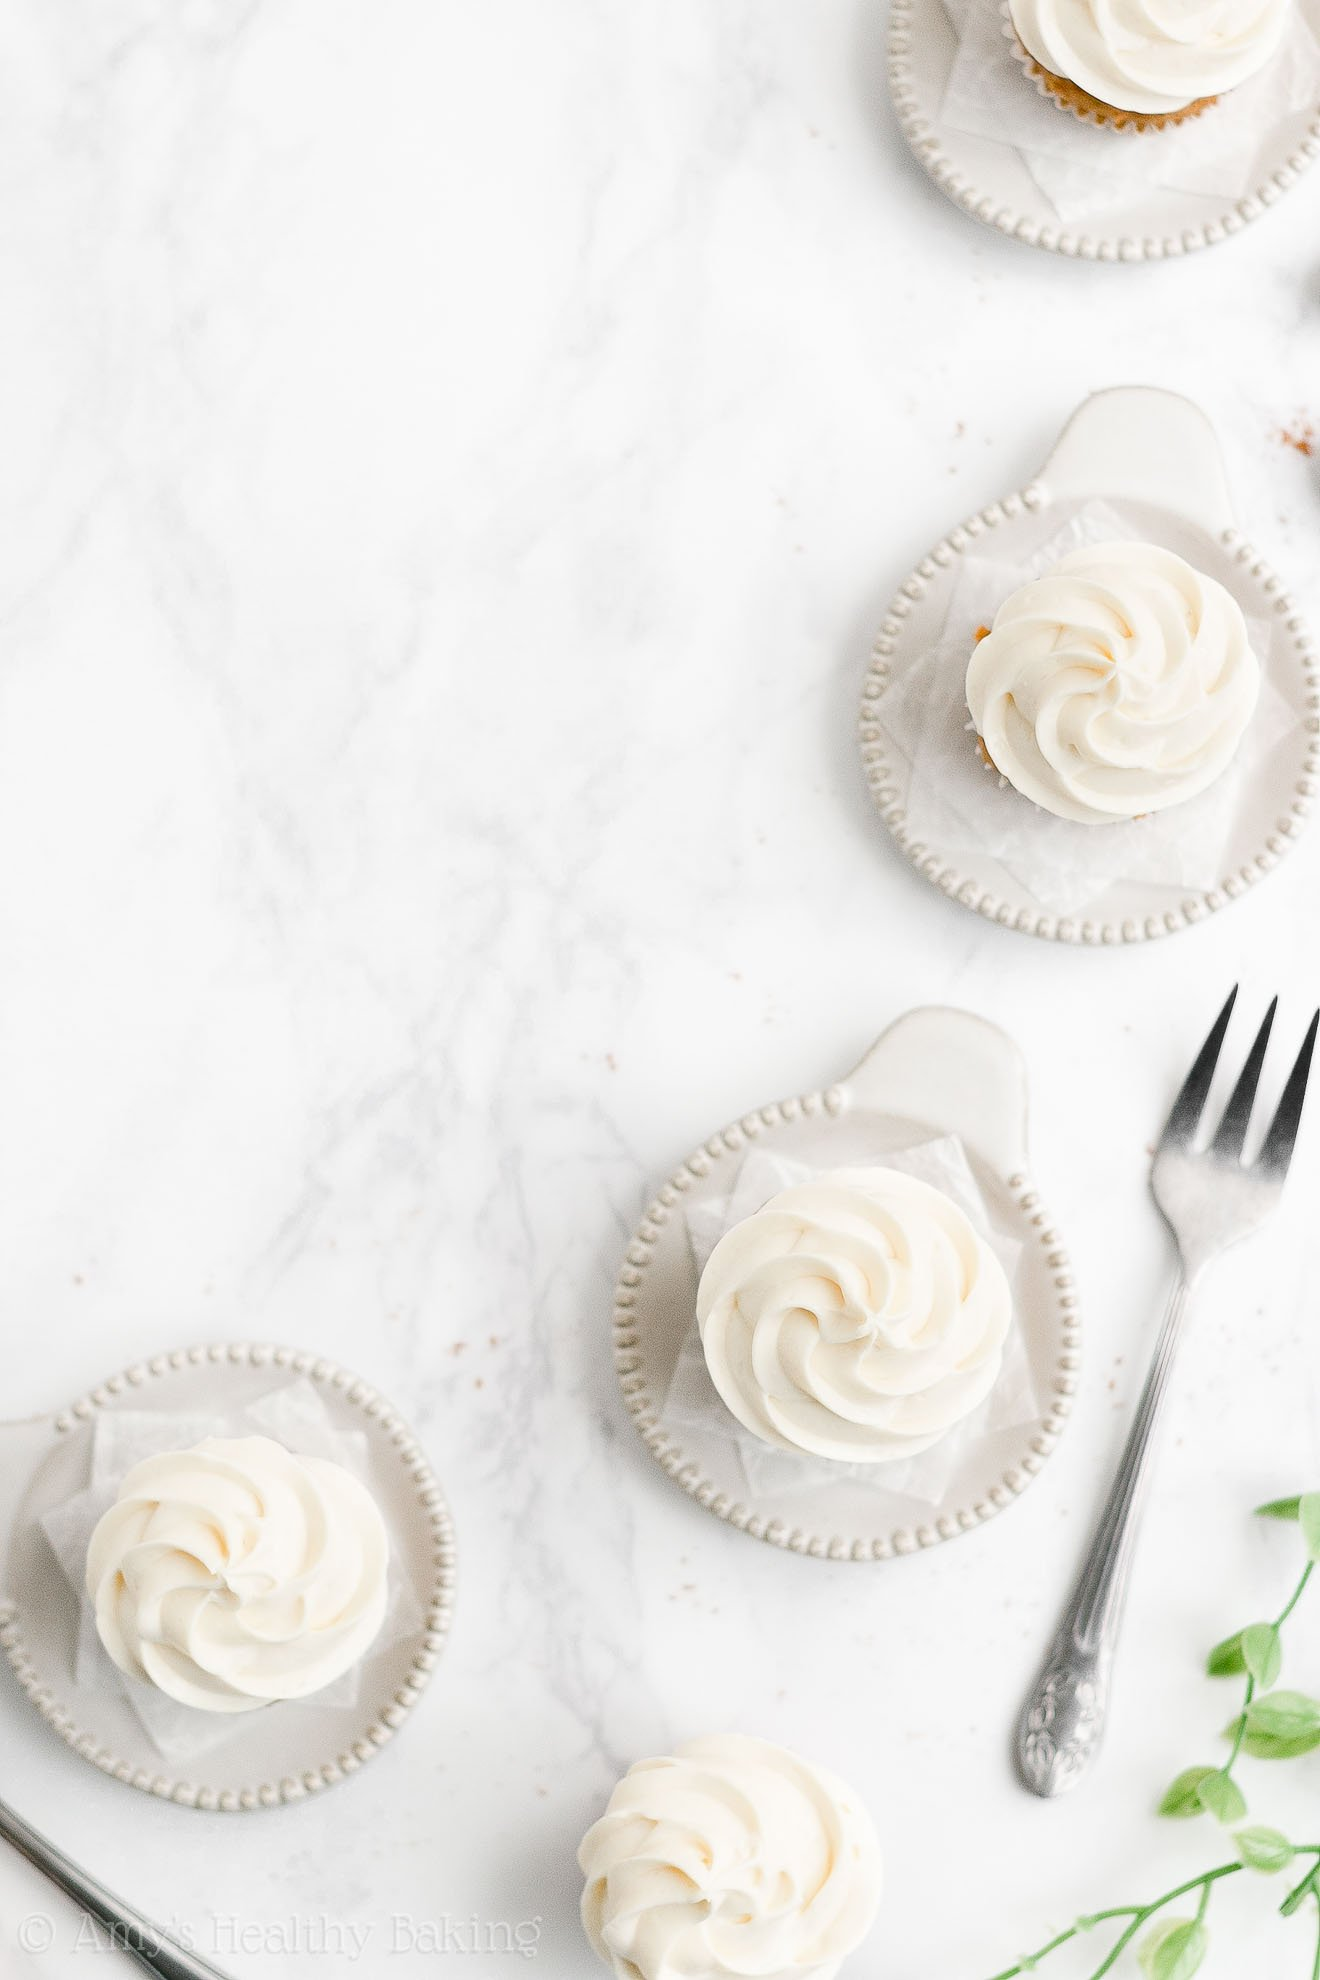 Best Easy Healthy Mini Carrot Cake Cupcakes with Sugar Free Cream Cheese Frosting